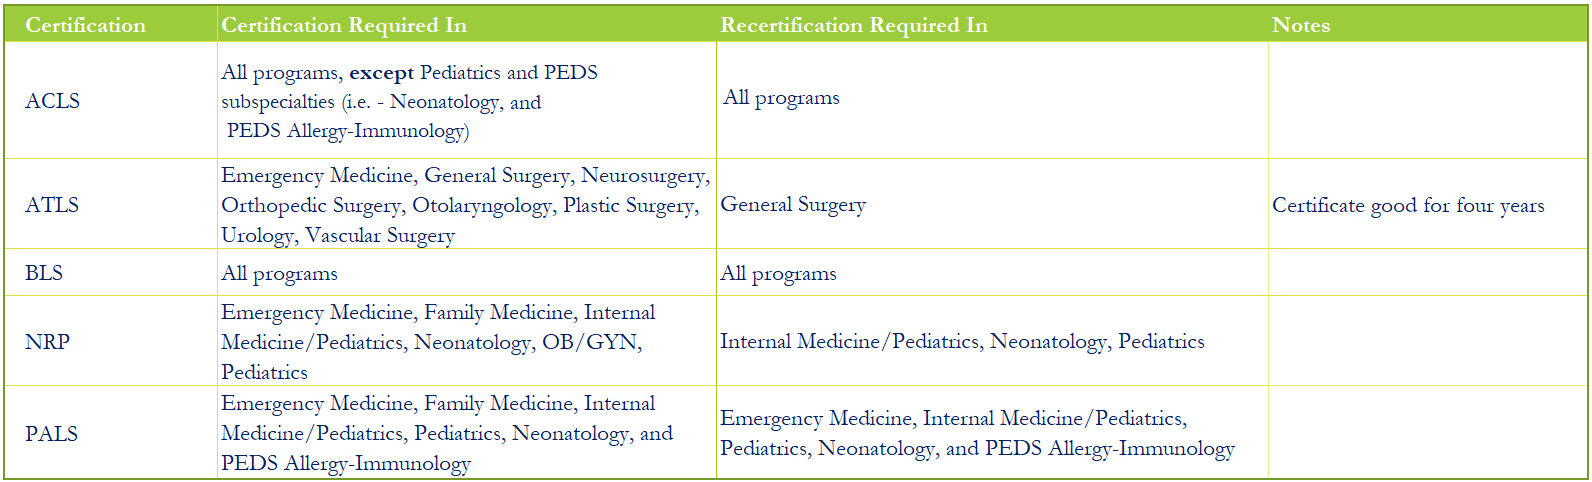 Table of Trainee Required Certifications